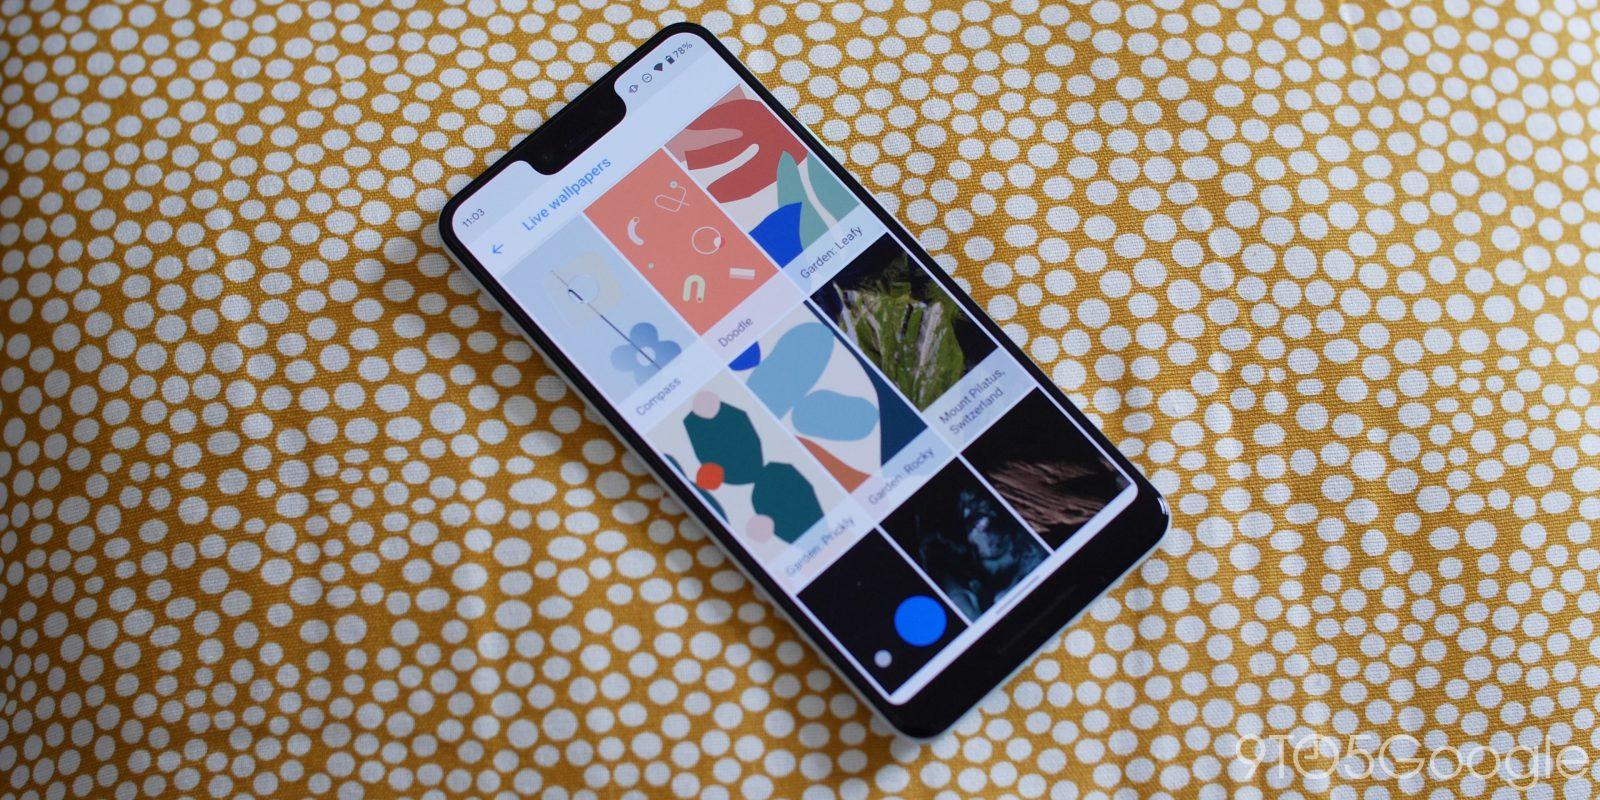 Hands-on with the new Google Pixel 4 live wallpapers ...